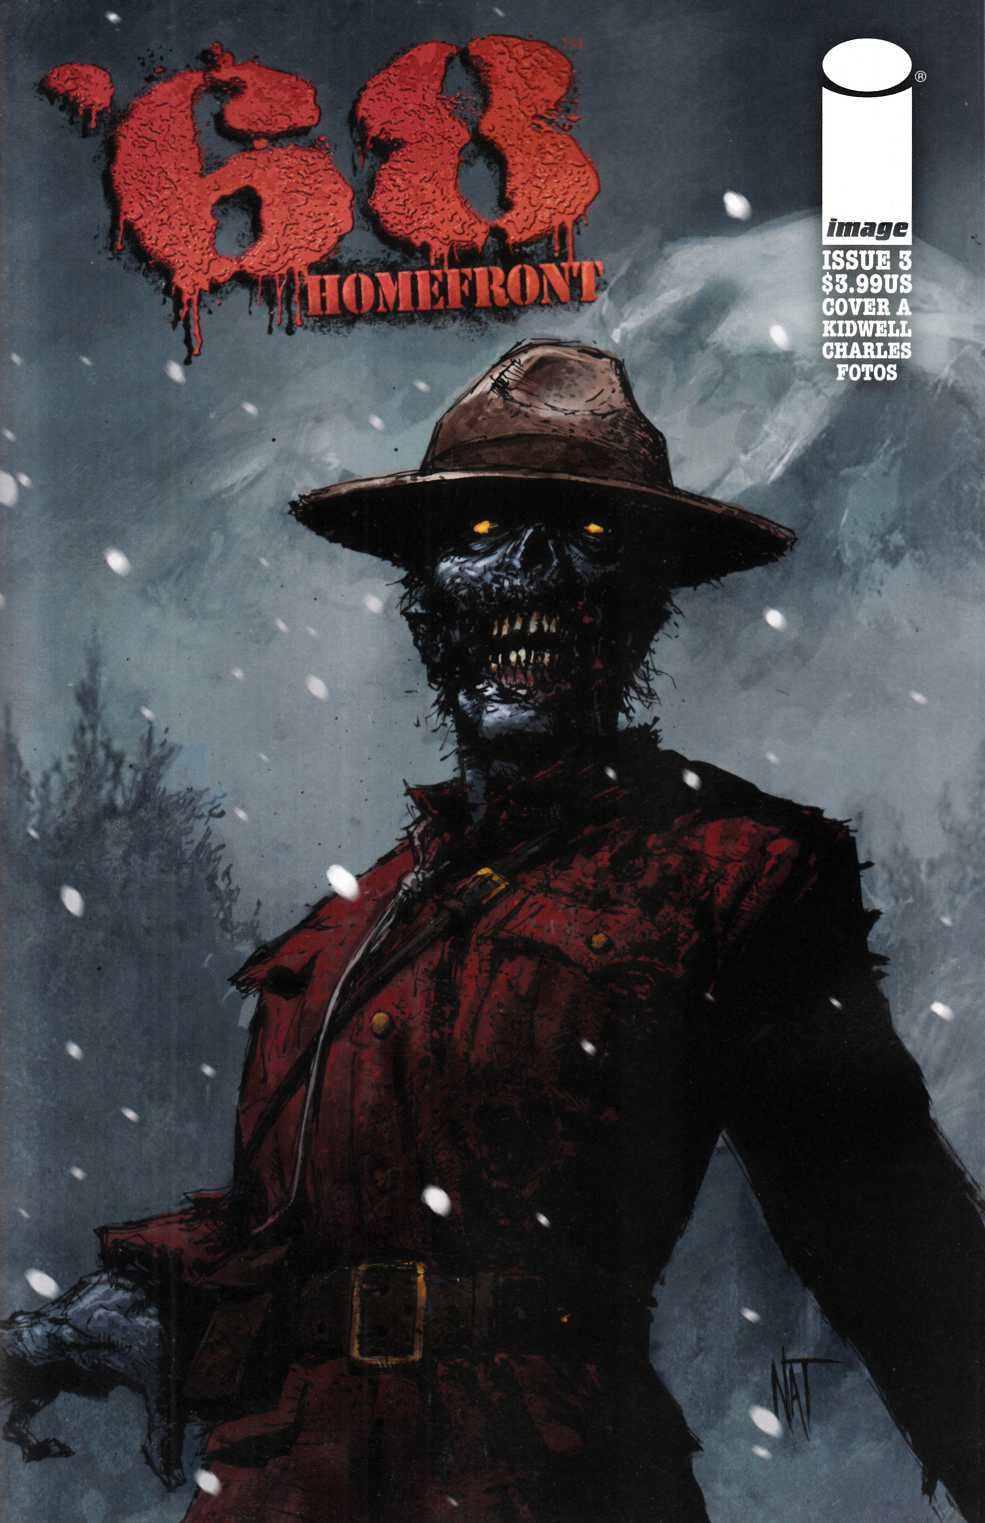 68 Homefront #3 Cover A- Jones [Image Comic] THUMBNAIL